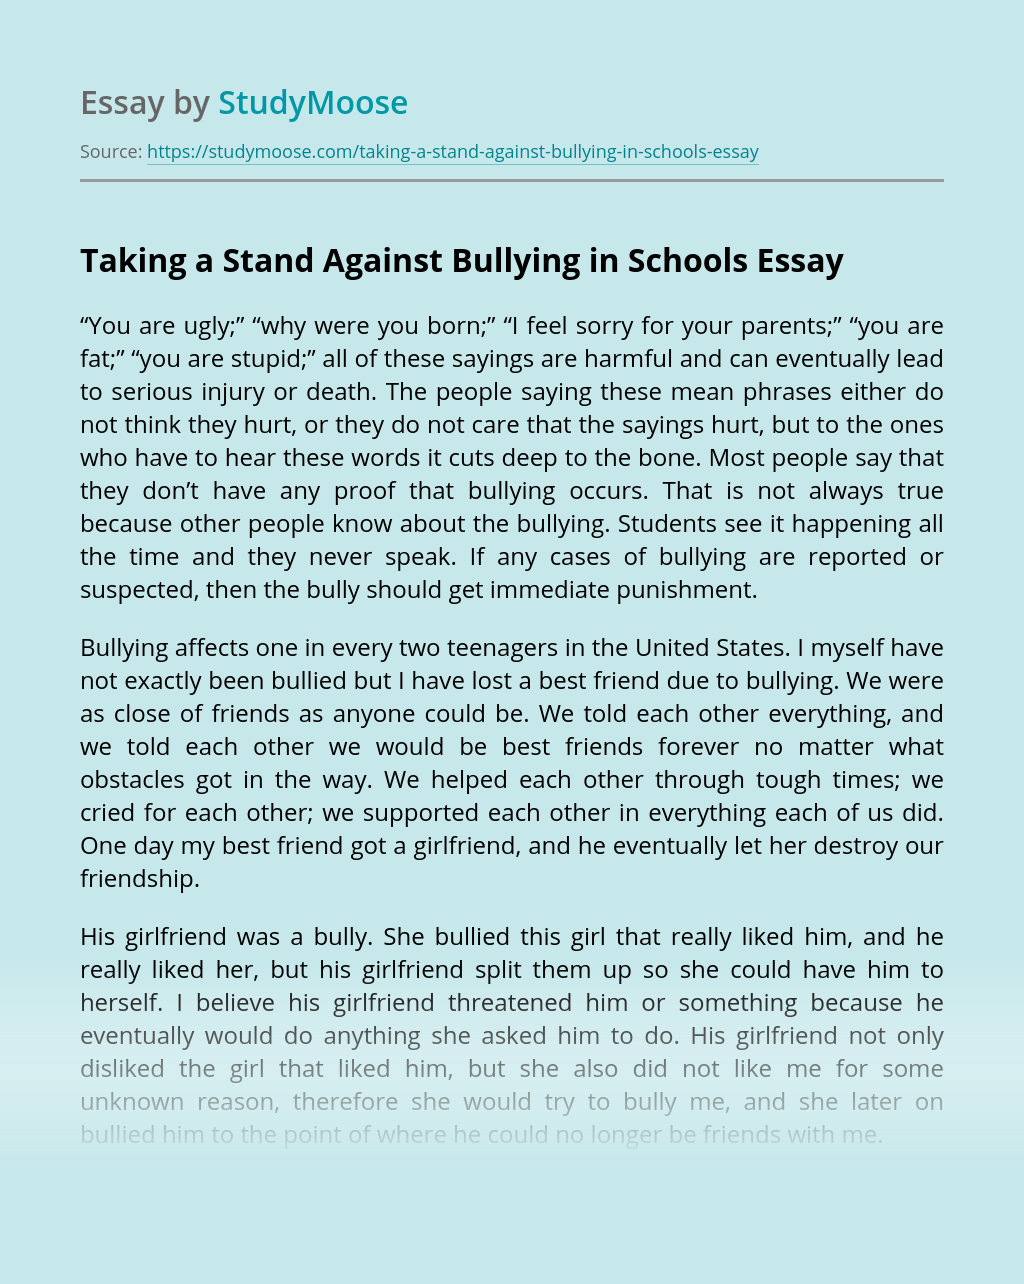 Taking a Stand Against Bullying in Schools